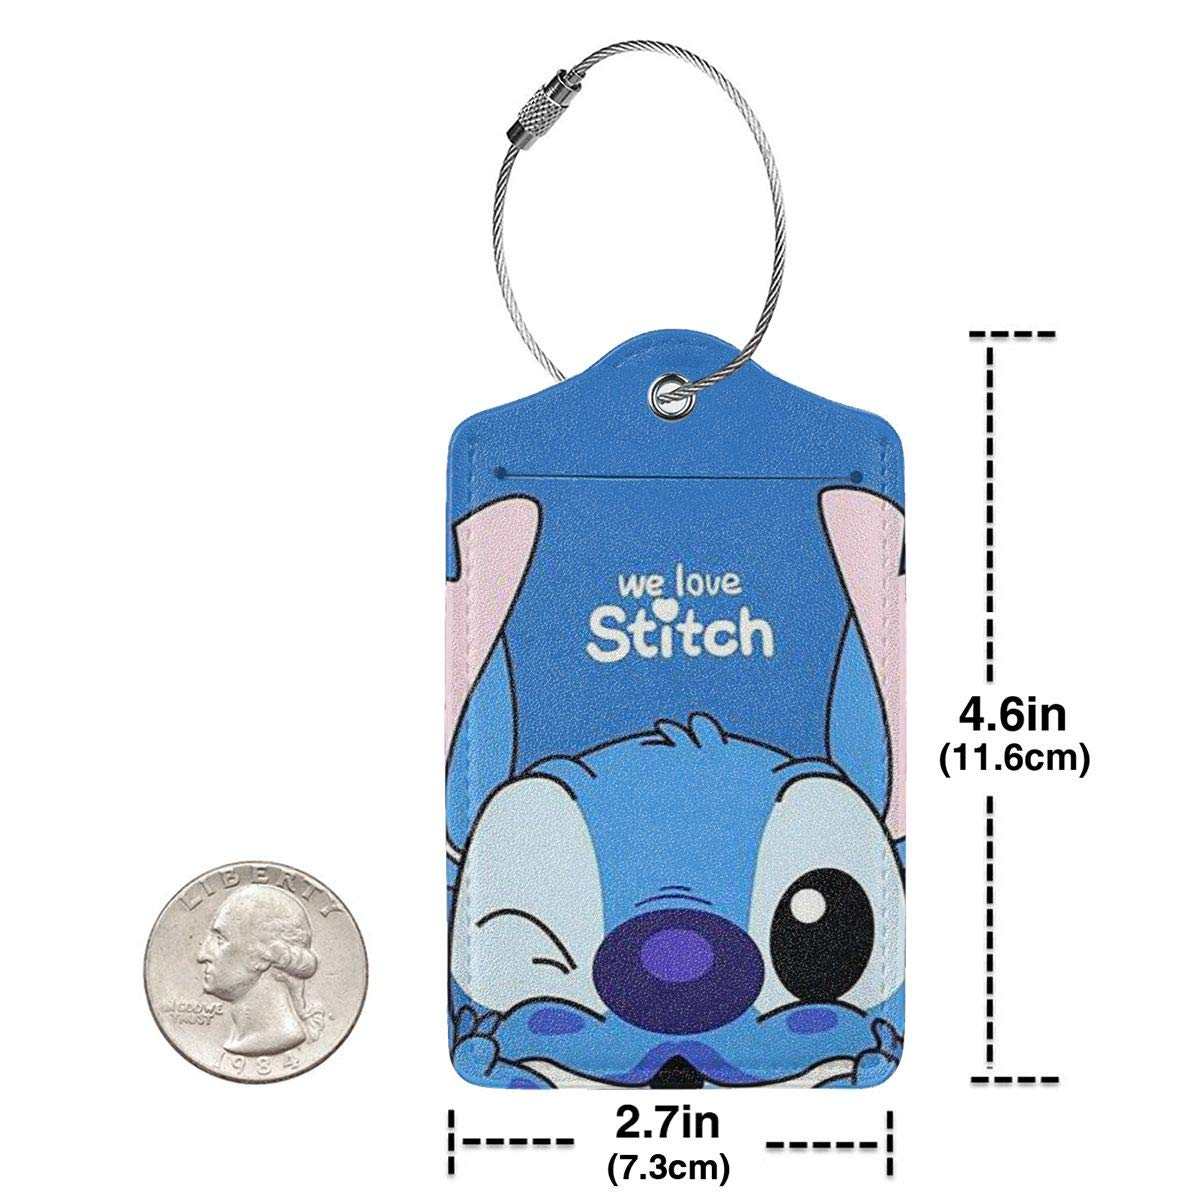 Suit For Travel,Vacation Fashion We Love Stitch Soft Leather Luggage Tags With Privacy Cover 1-4 Pcs Choose